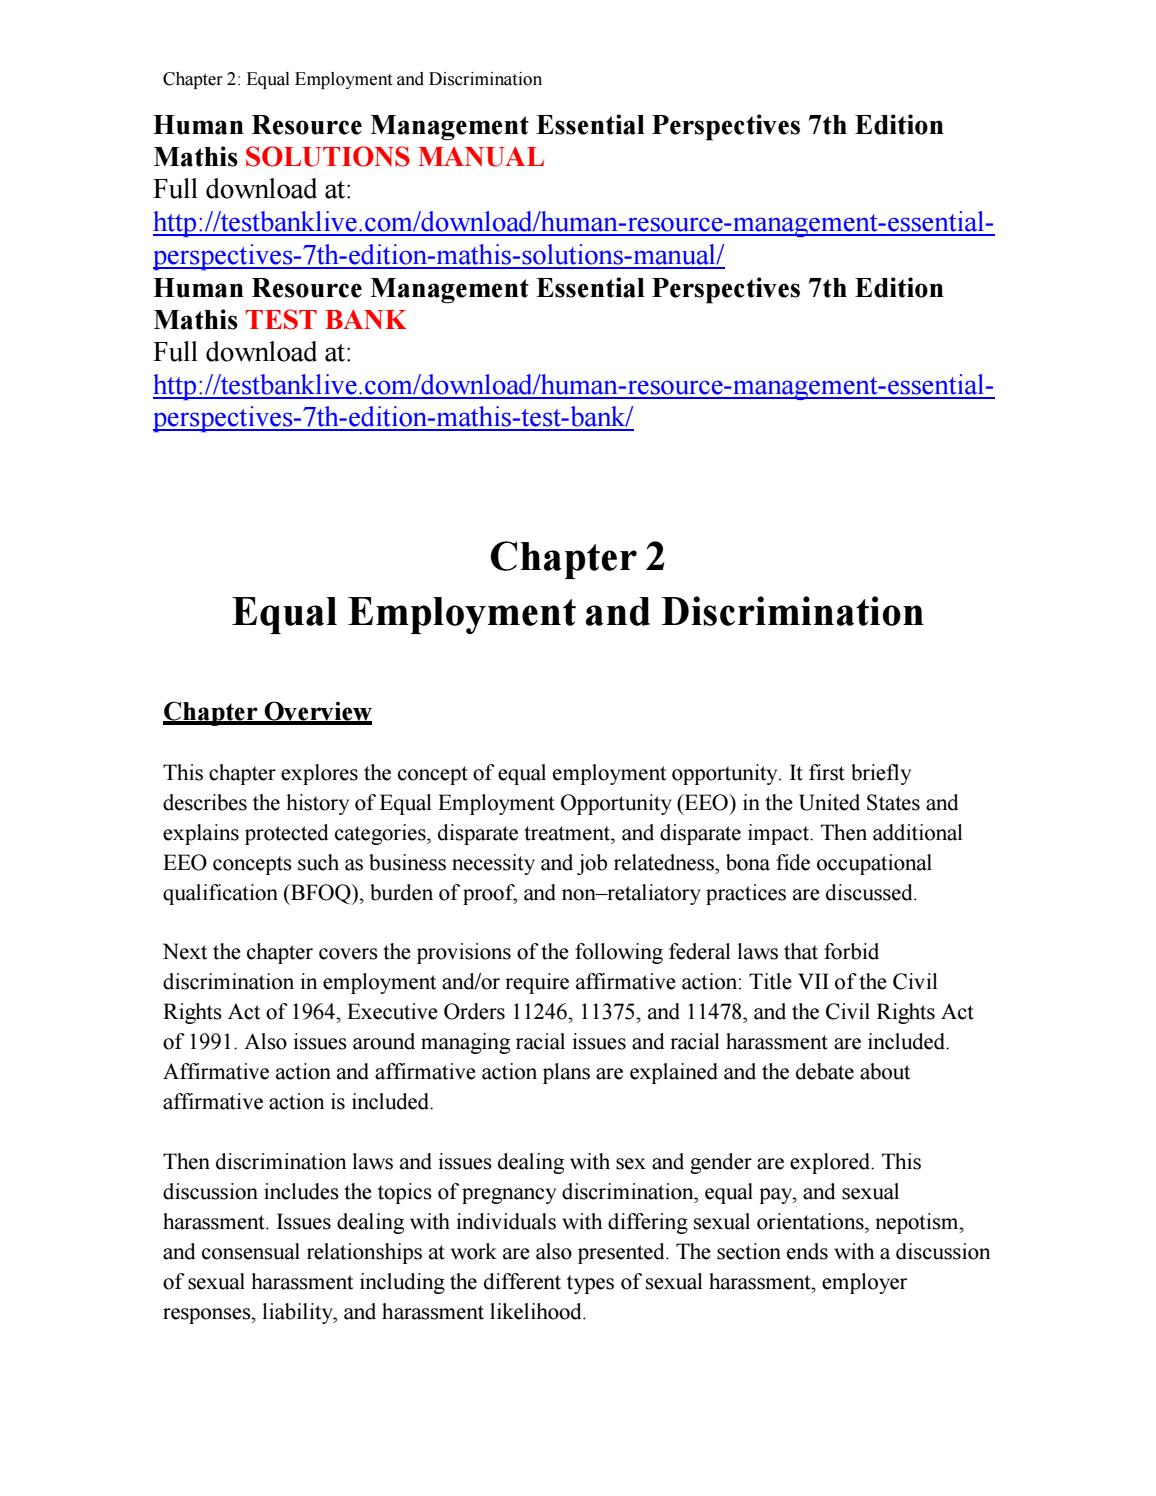 Eeoc disparate impact complaint procedure for sexual harassment